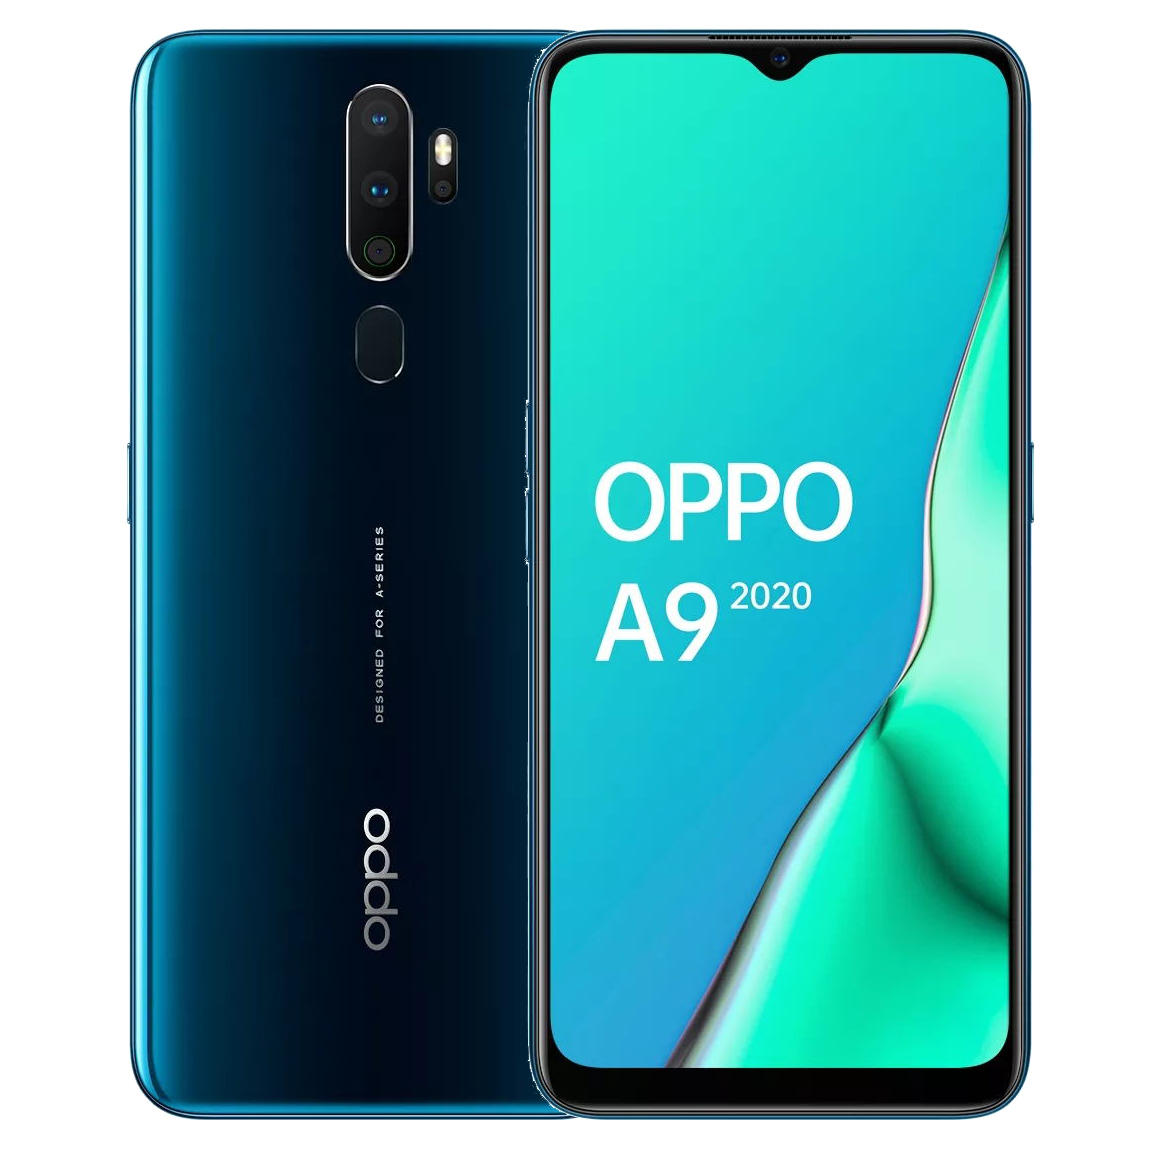 OPPO A9 2020 6.5 inch HD+ 5000mAh Android 9.0 48MP Quad Rear Cameras 4GB 128GB Snapdragon 665 Octa Core 4G Smartphone - Marine Green